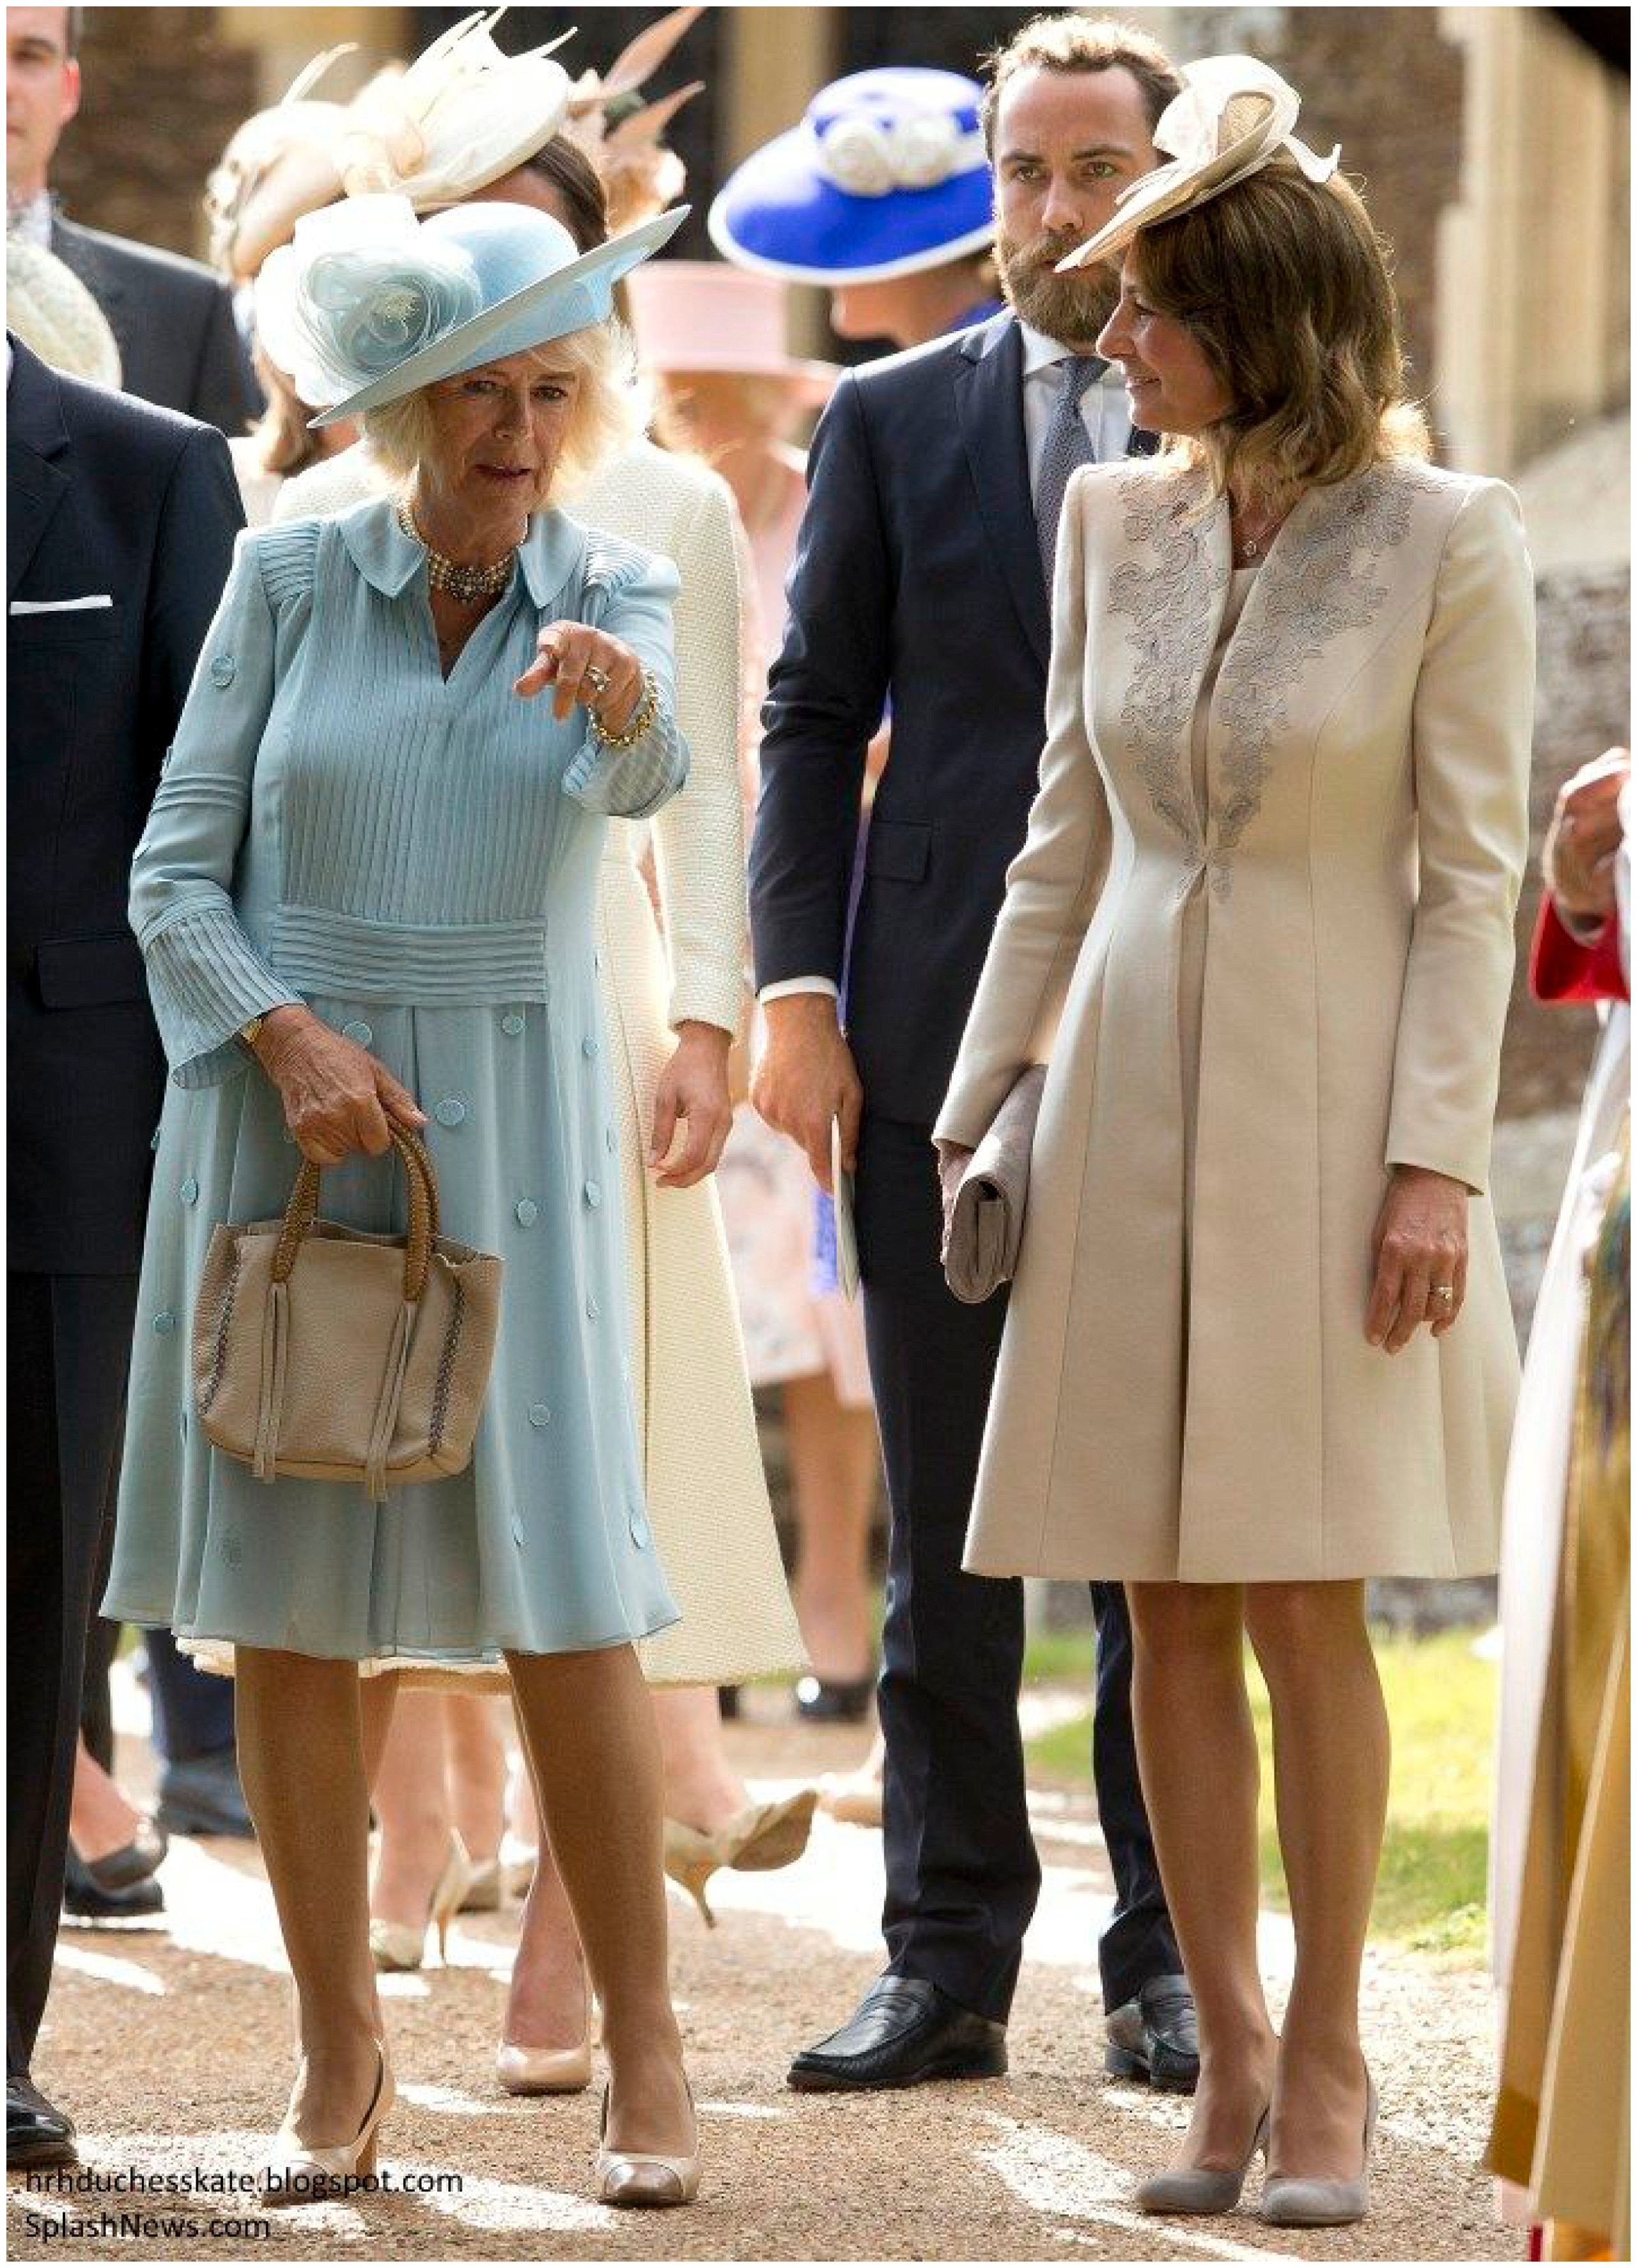 Christening in style: Dressing for family occasions